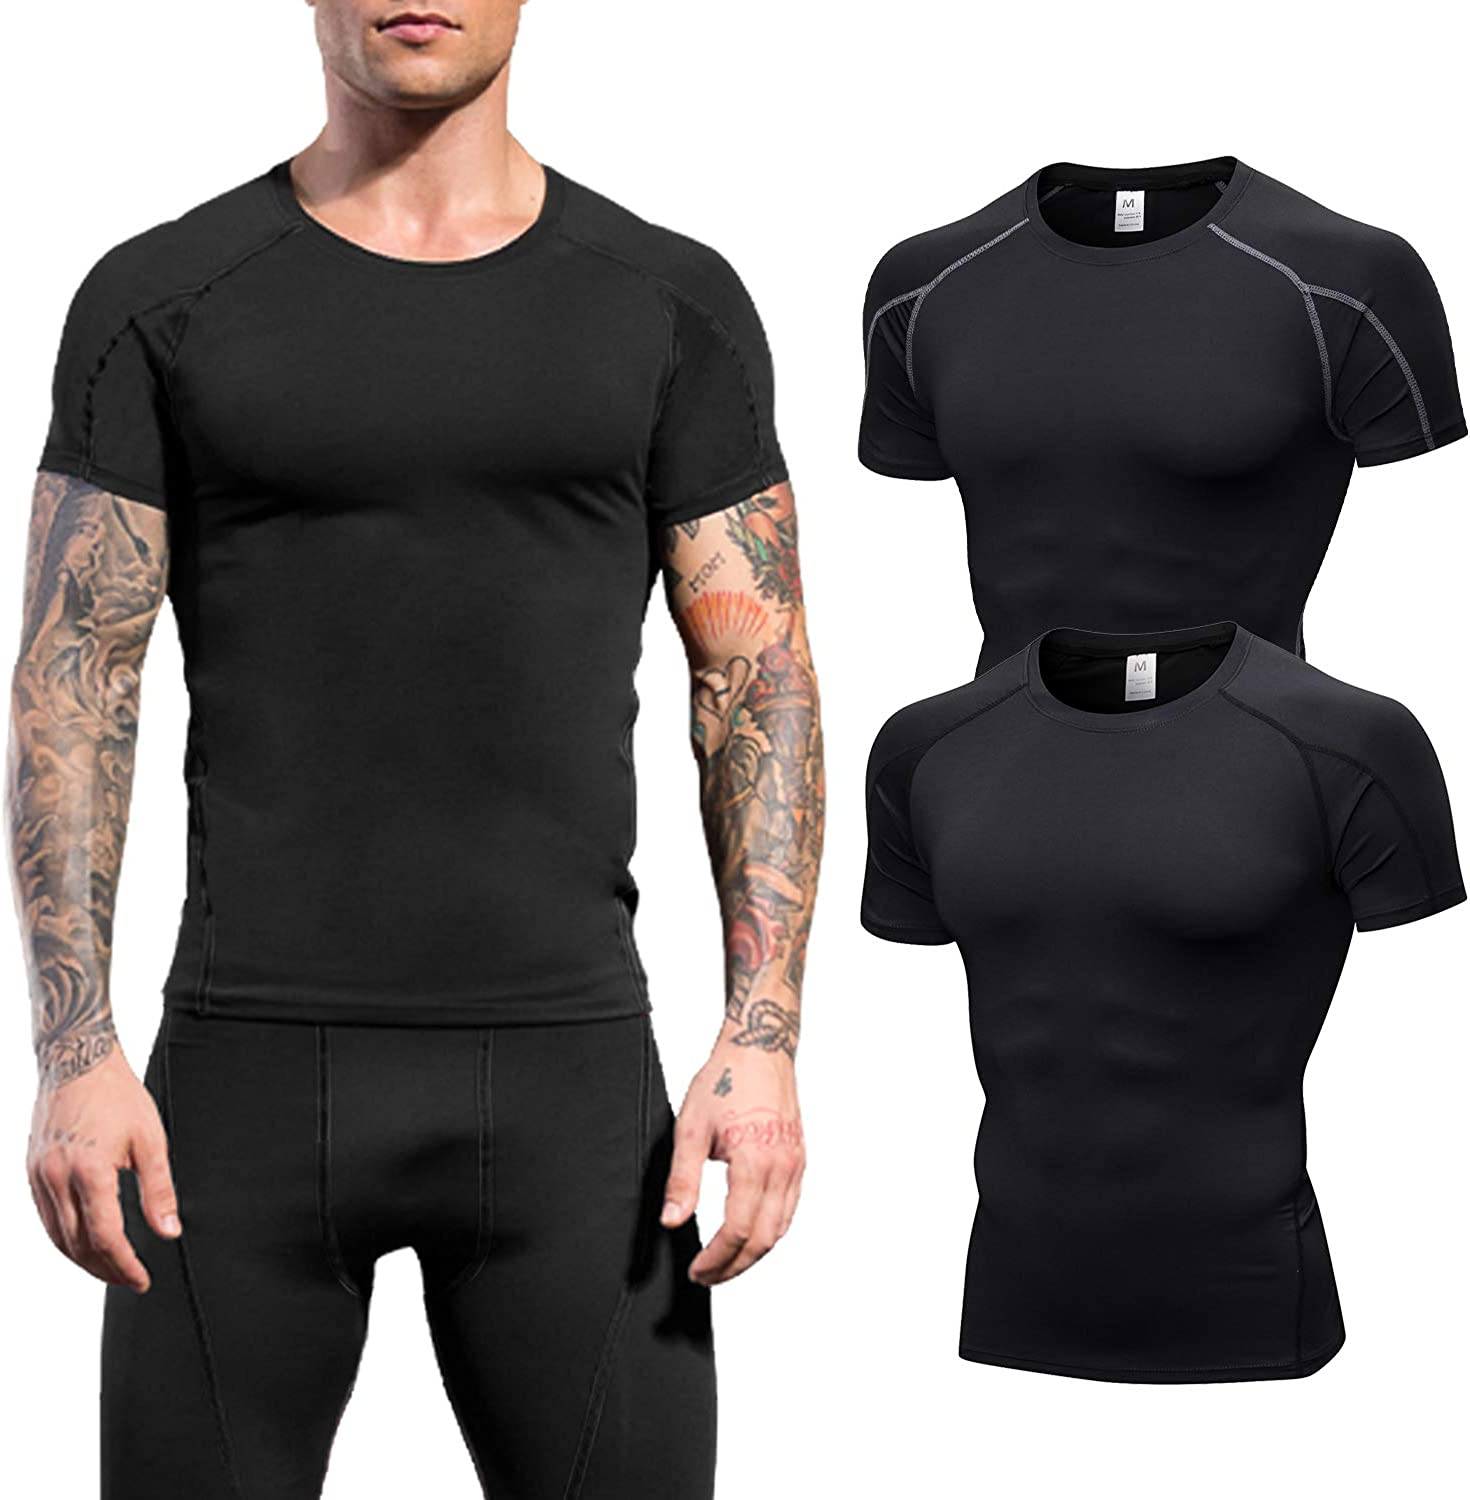 LEICHR Mens Compression Short Sleeve Shirts Sports Baselayer Cool Dry Workout Shirts